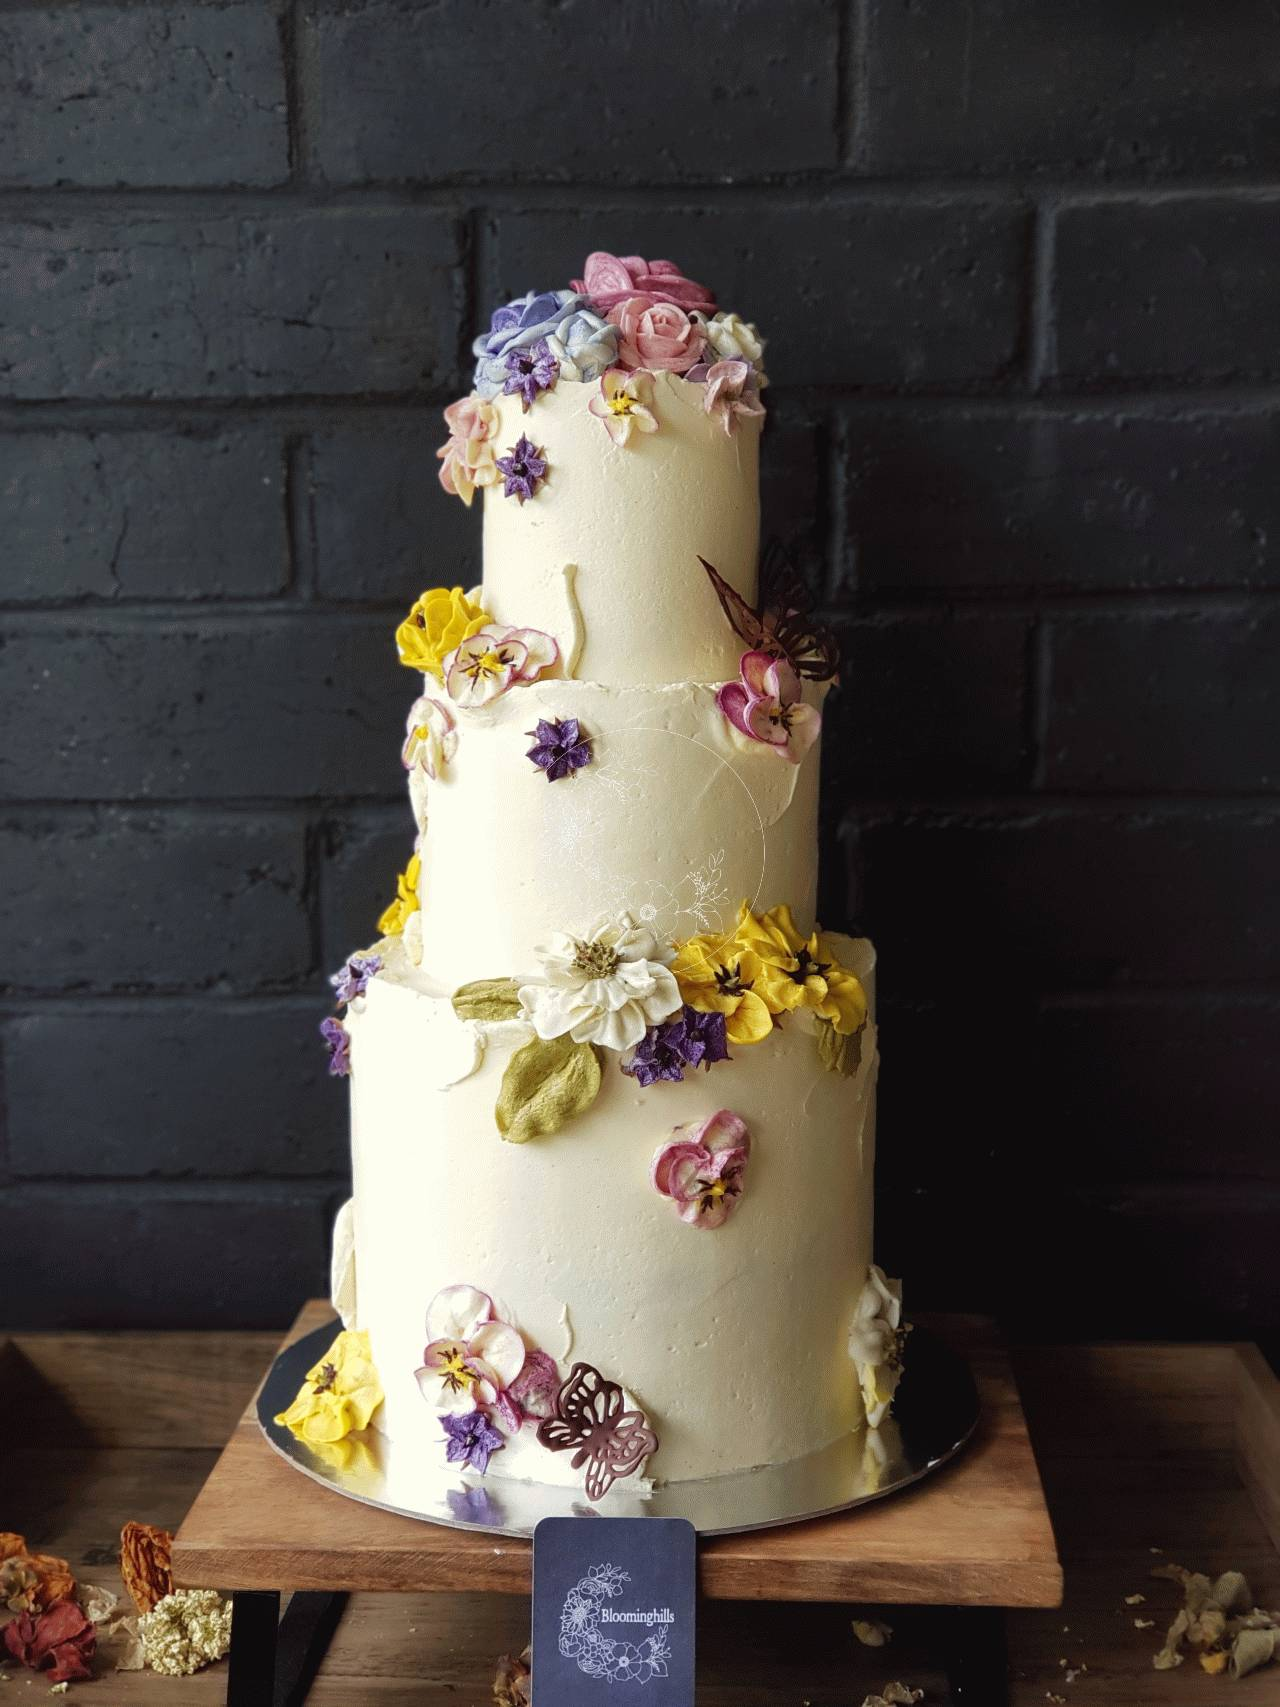 Sweet Blossom 3 Tier Wedding cake - Extended height bottom tier with flowers to match a small cottage garden with roses, pansies and other blossoms and chocolate butterflies